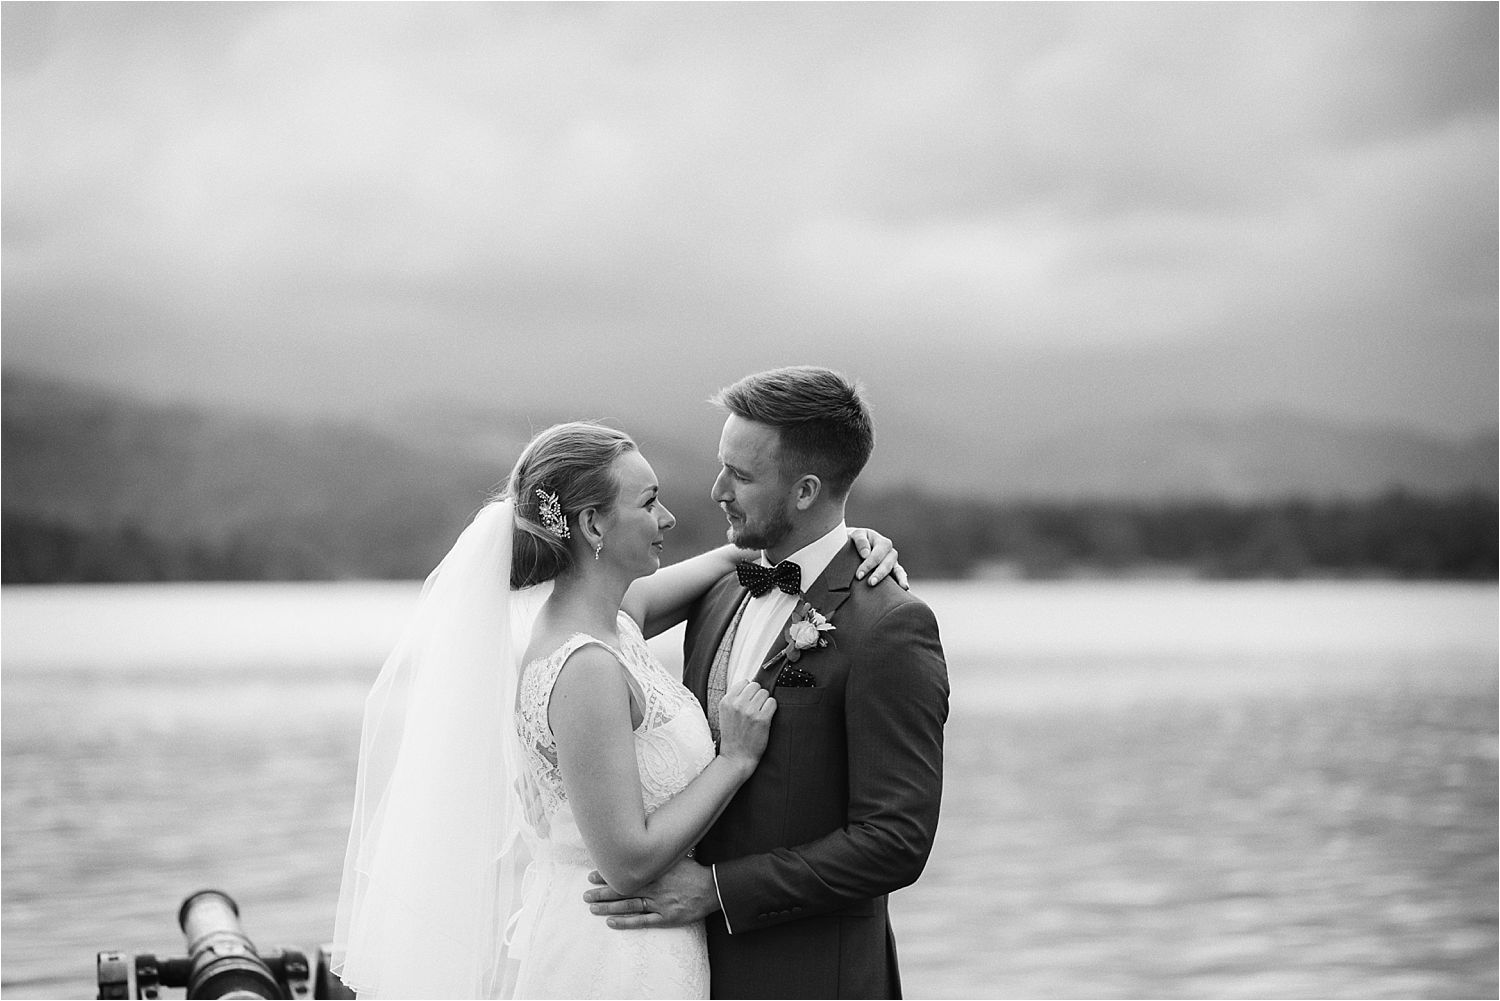 Bride and groom on Low Wood Bay jetty with Lake Windermere in background